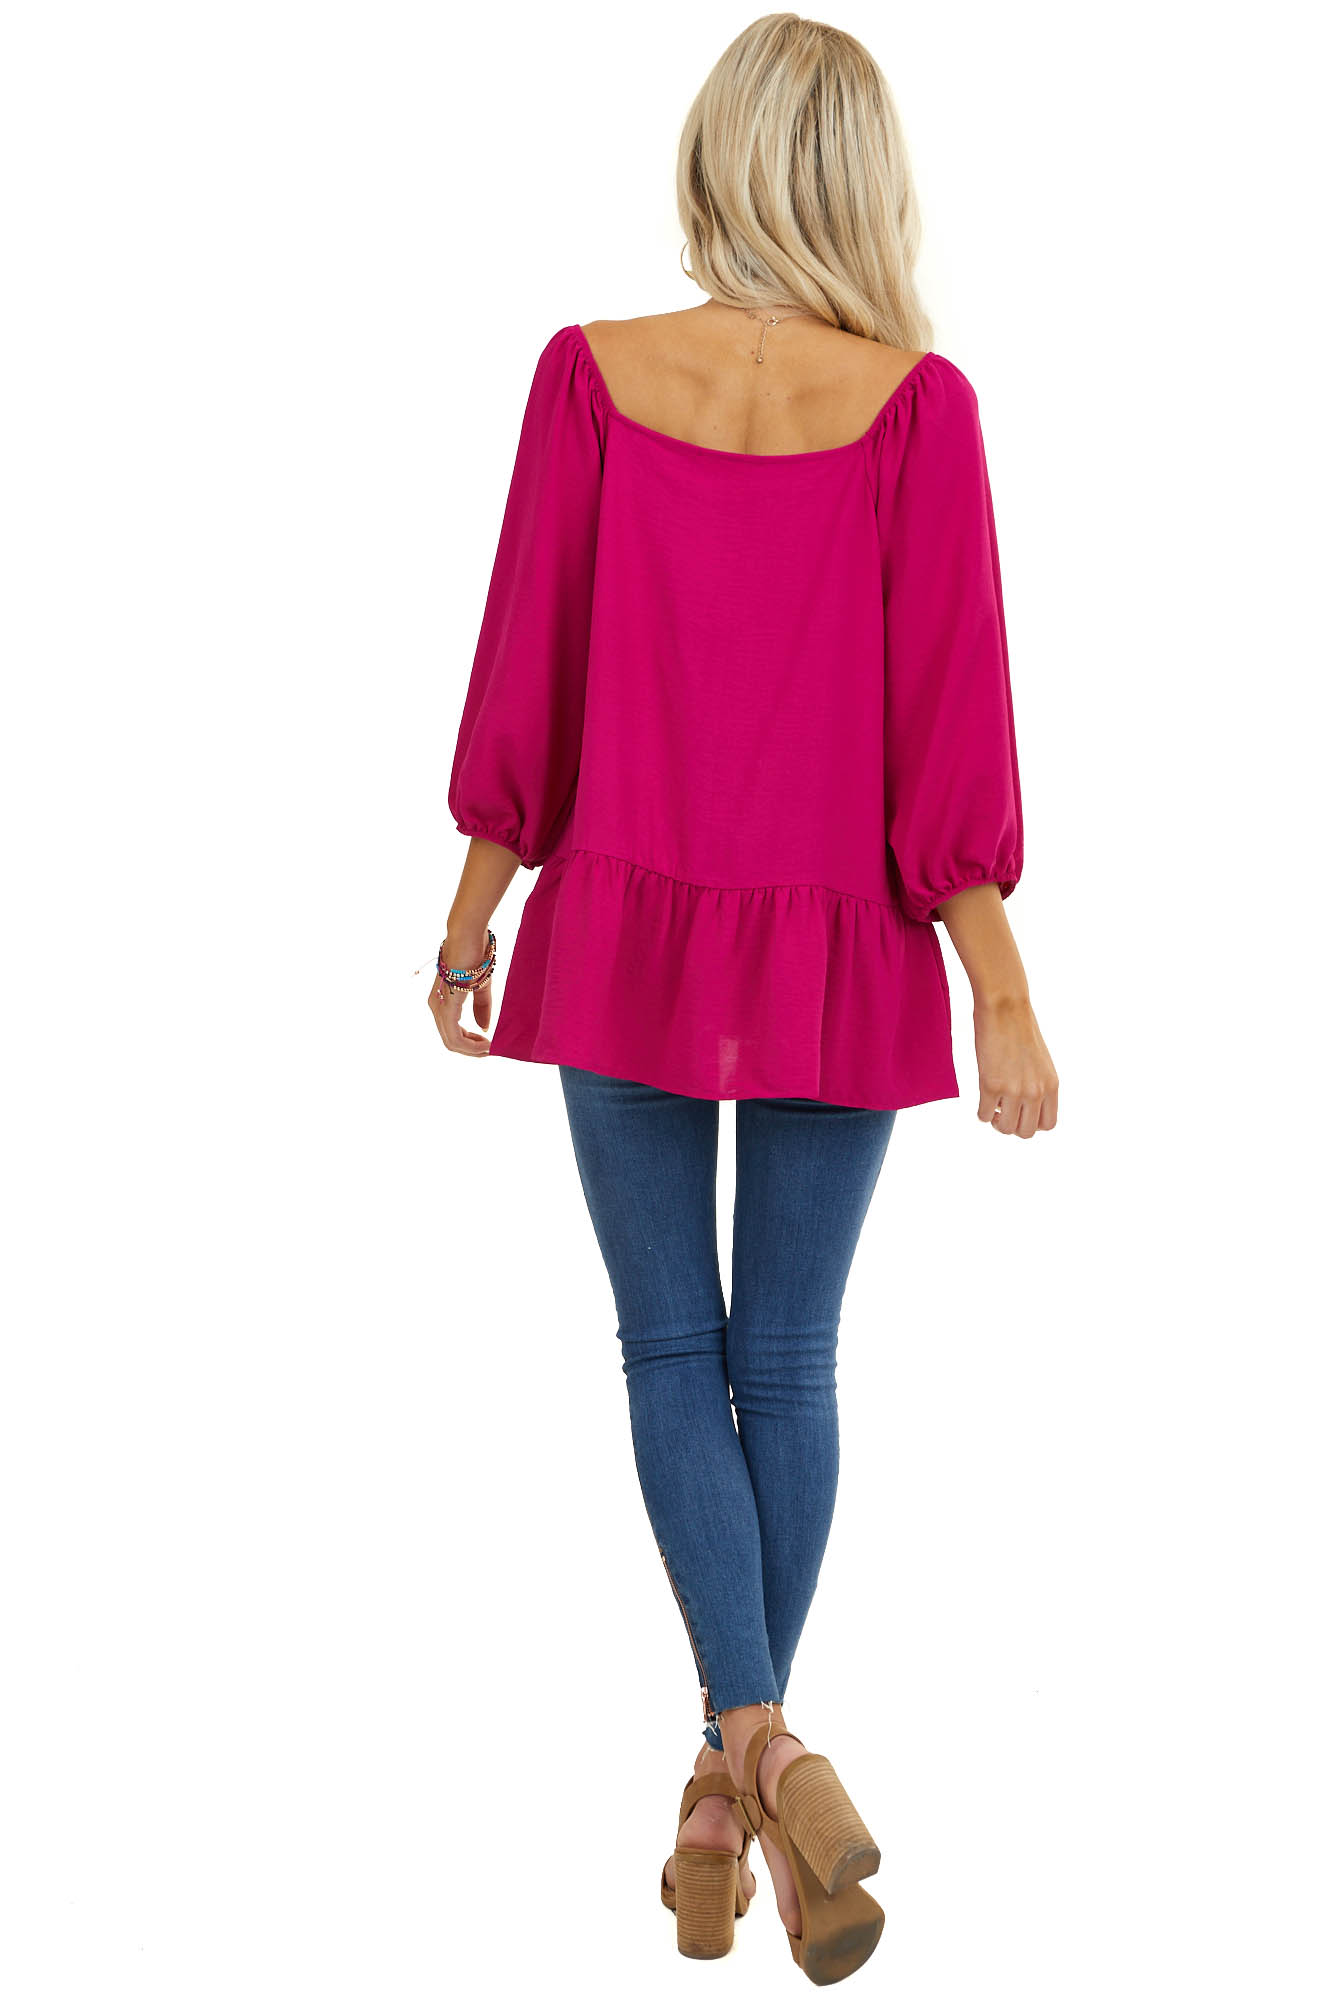 Magenta Square Neck Peplum Top with 3/4 Puff Sleeves